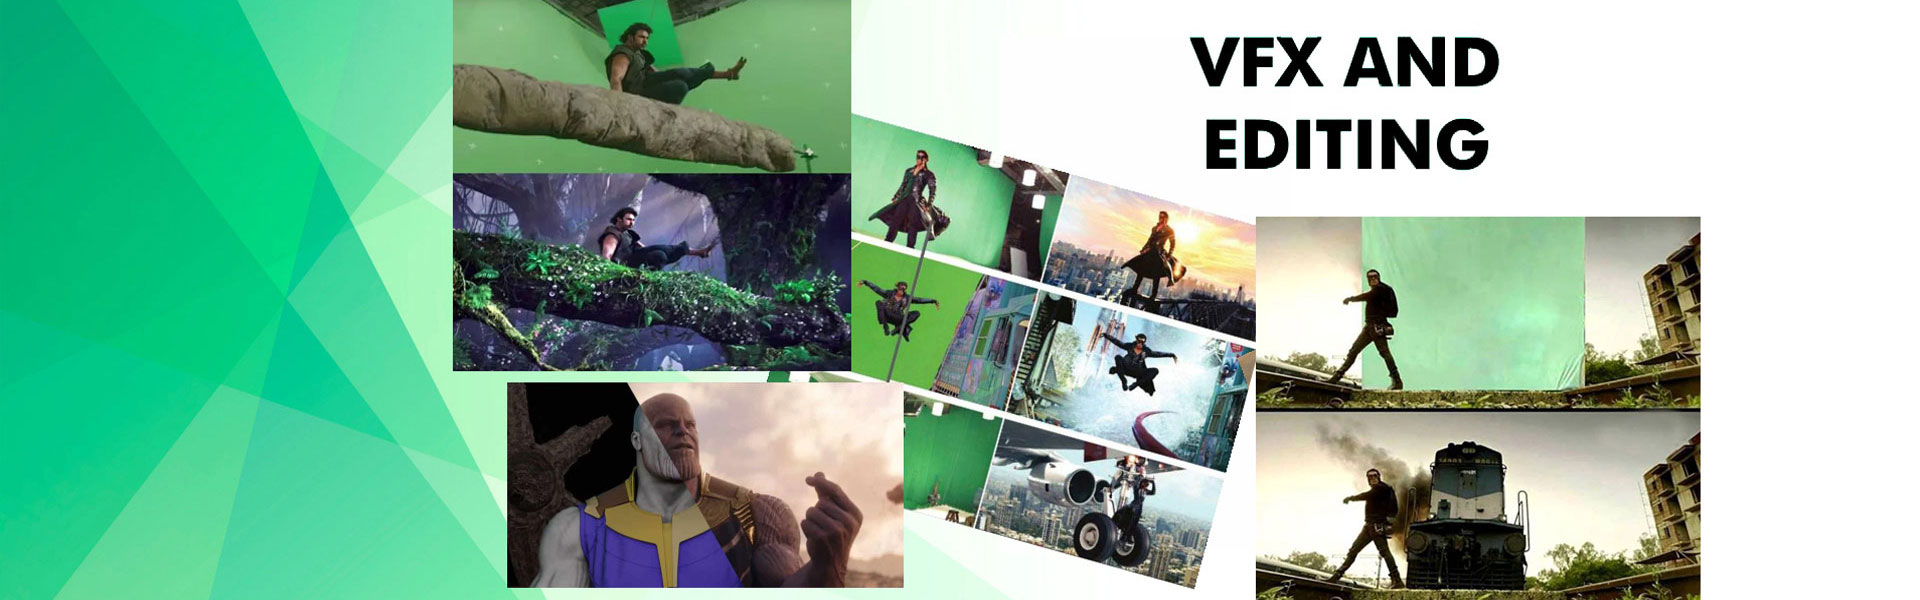 VFX Editing Institute In Kolhapur